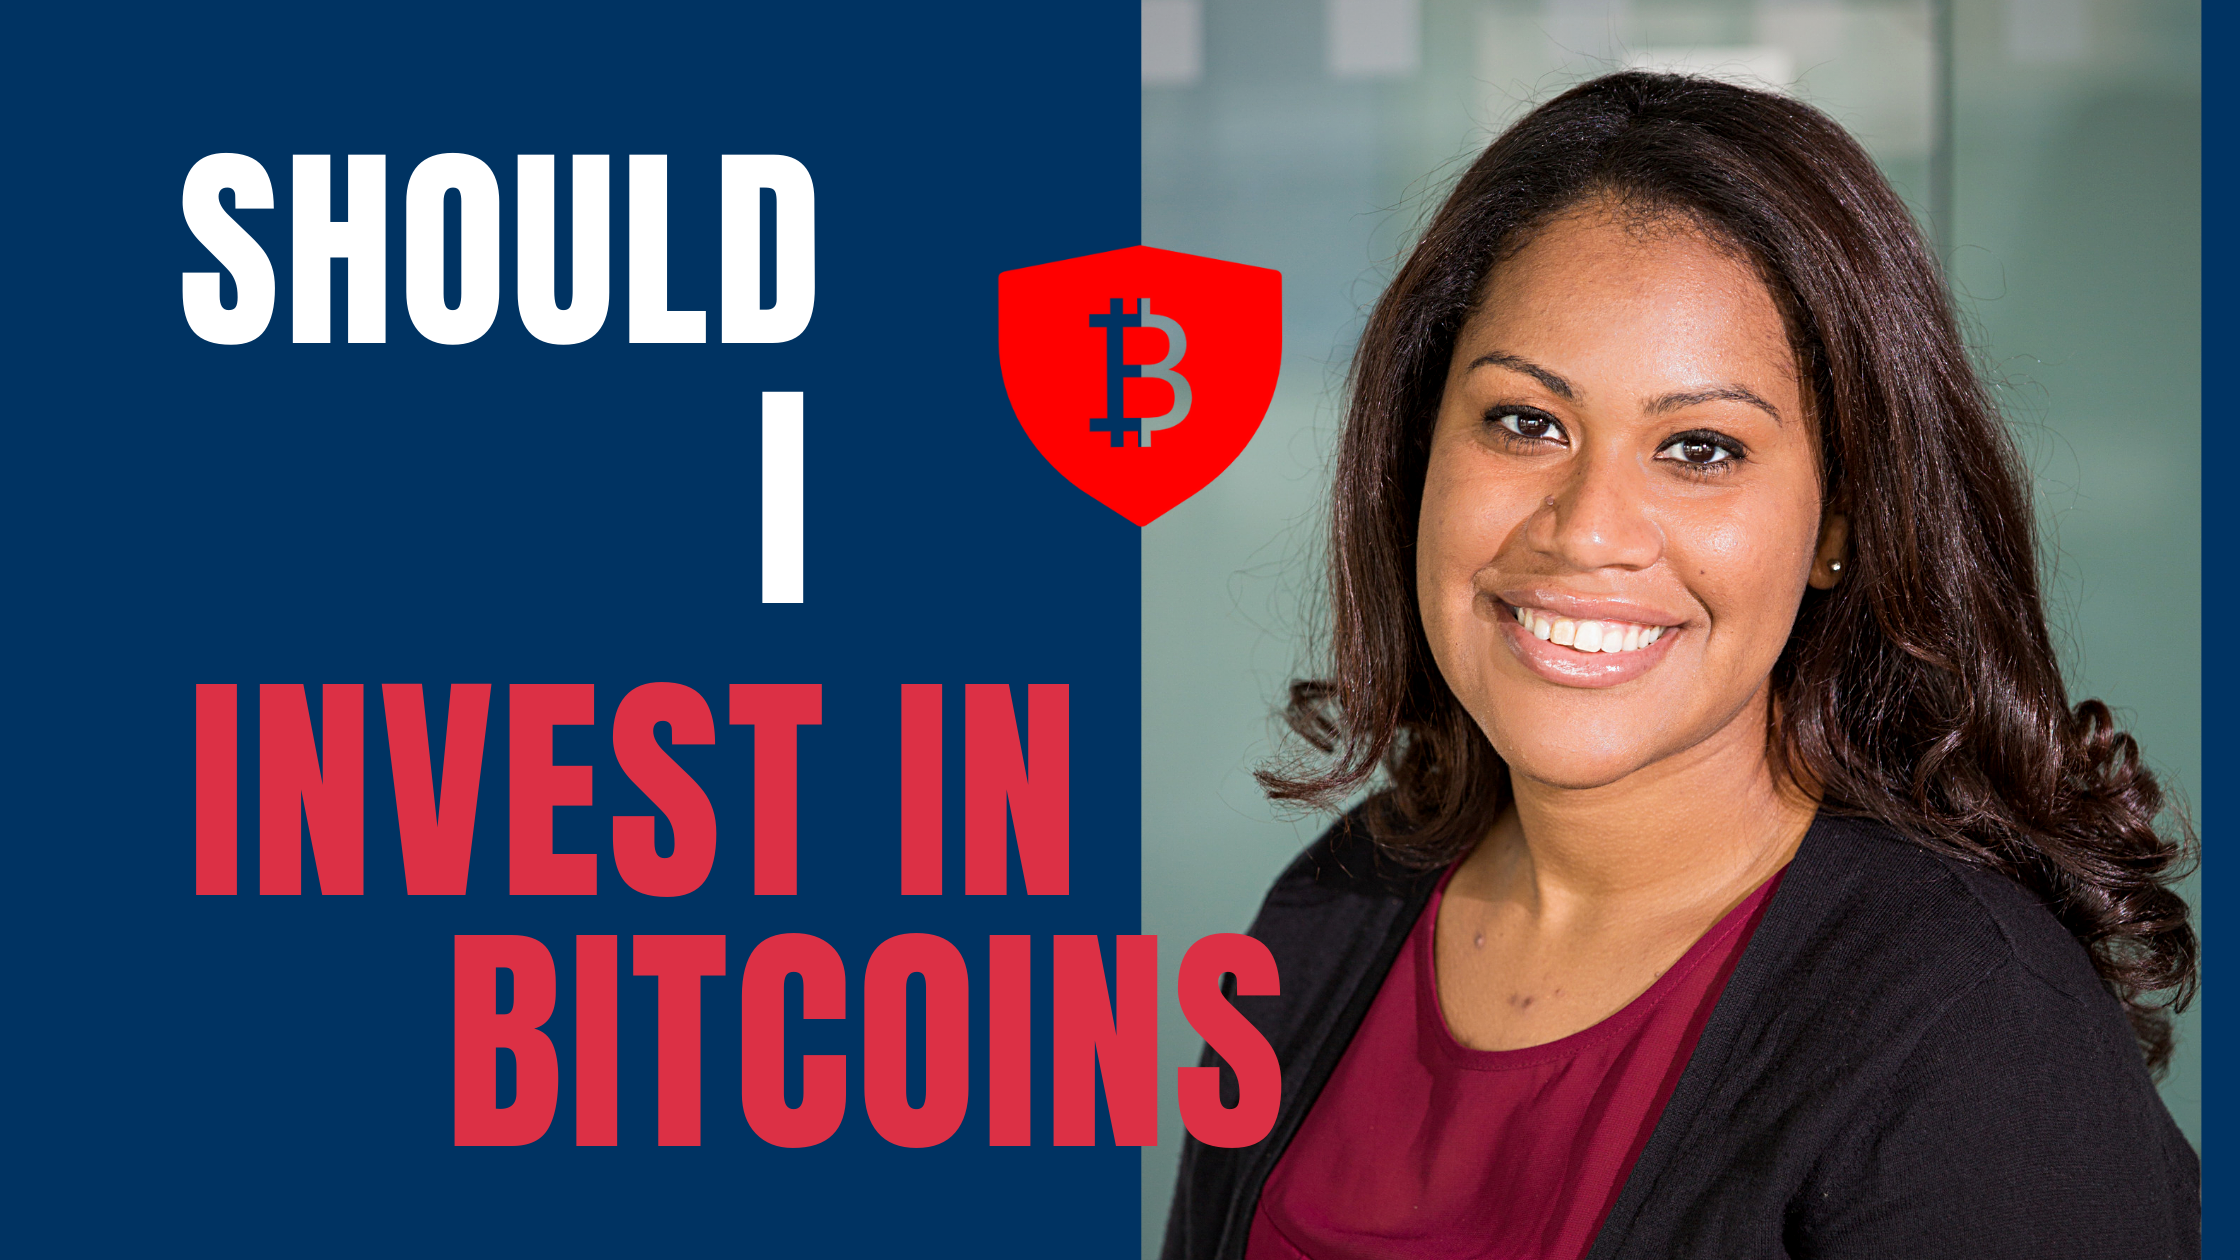 Should I invest in bitcoin